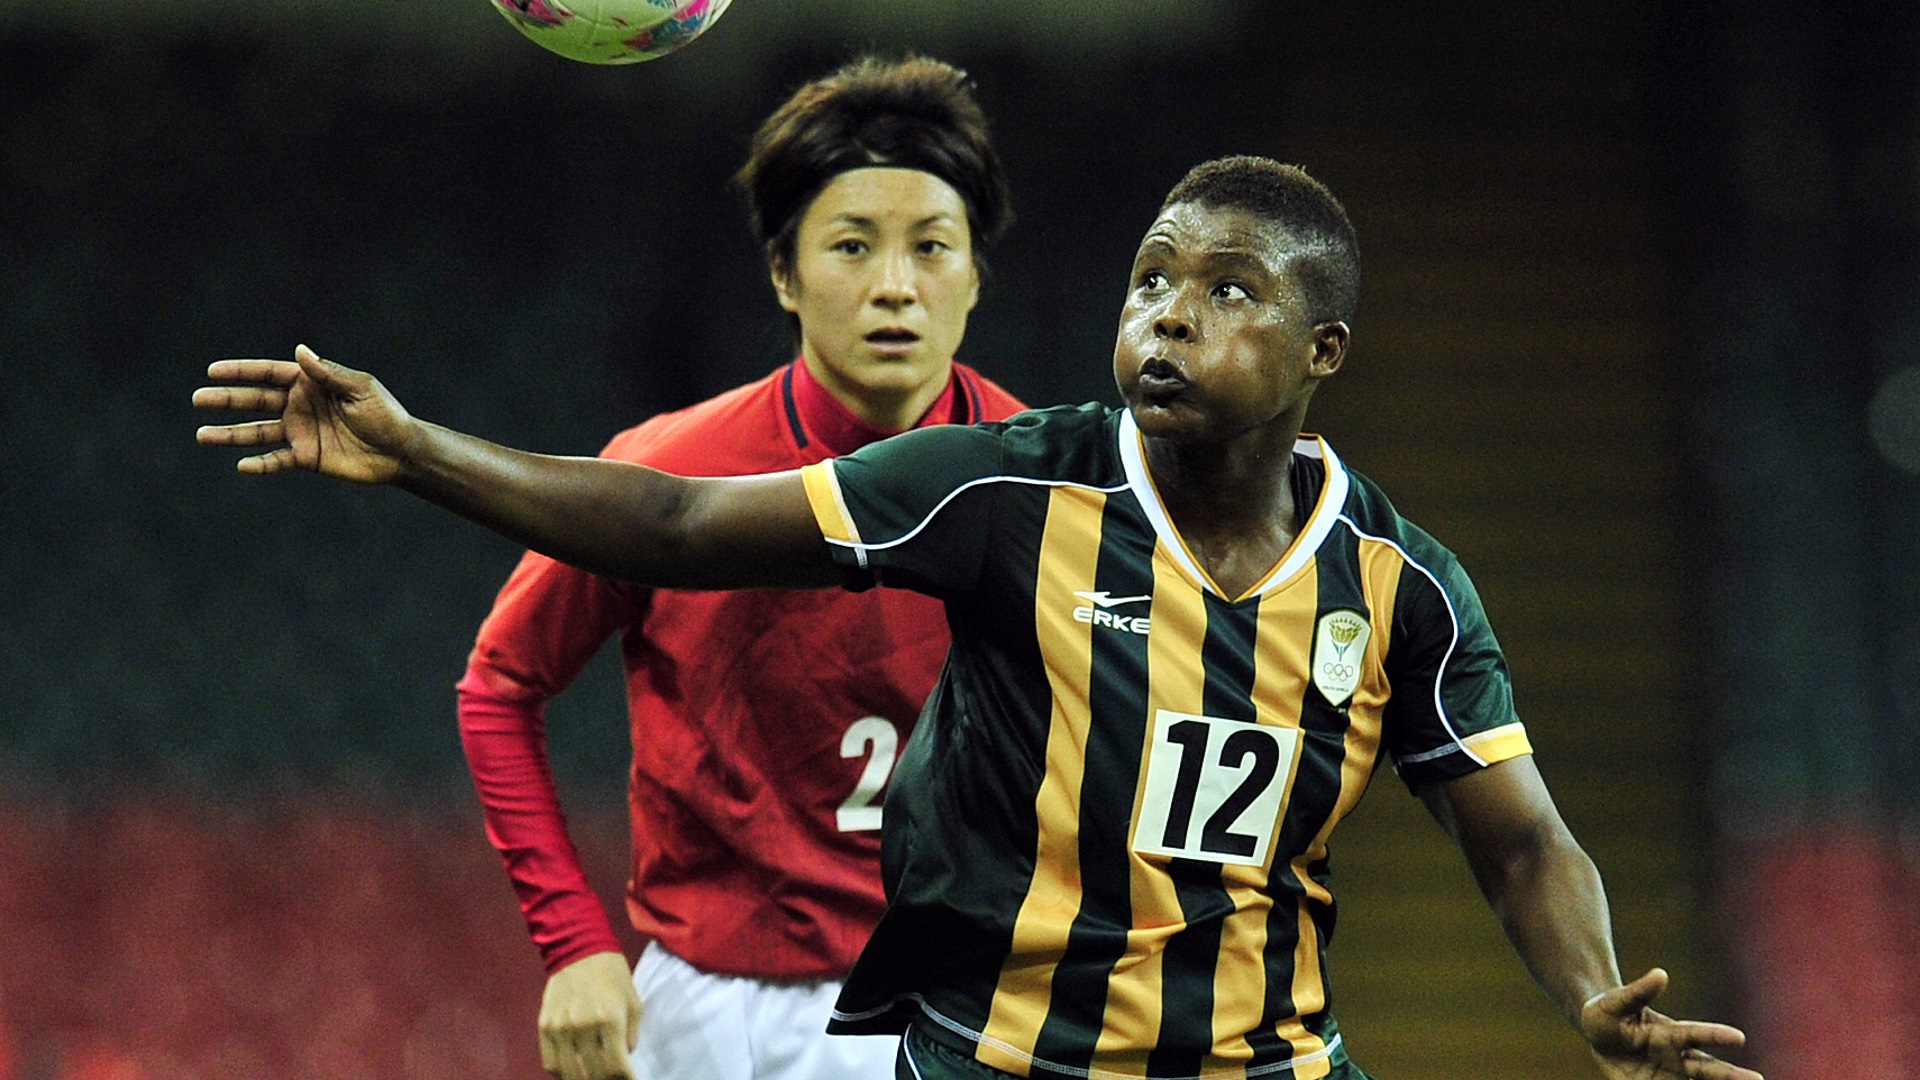 South Africa's Portia Modise and Yukari Kinga of Japan